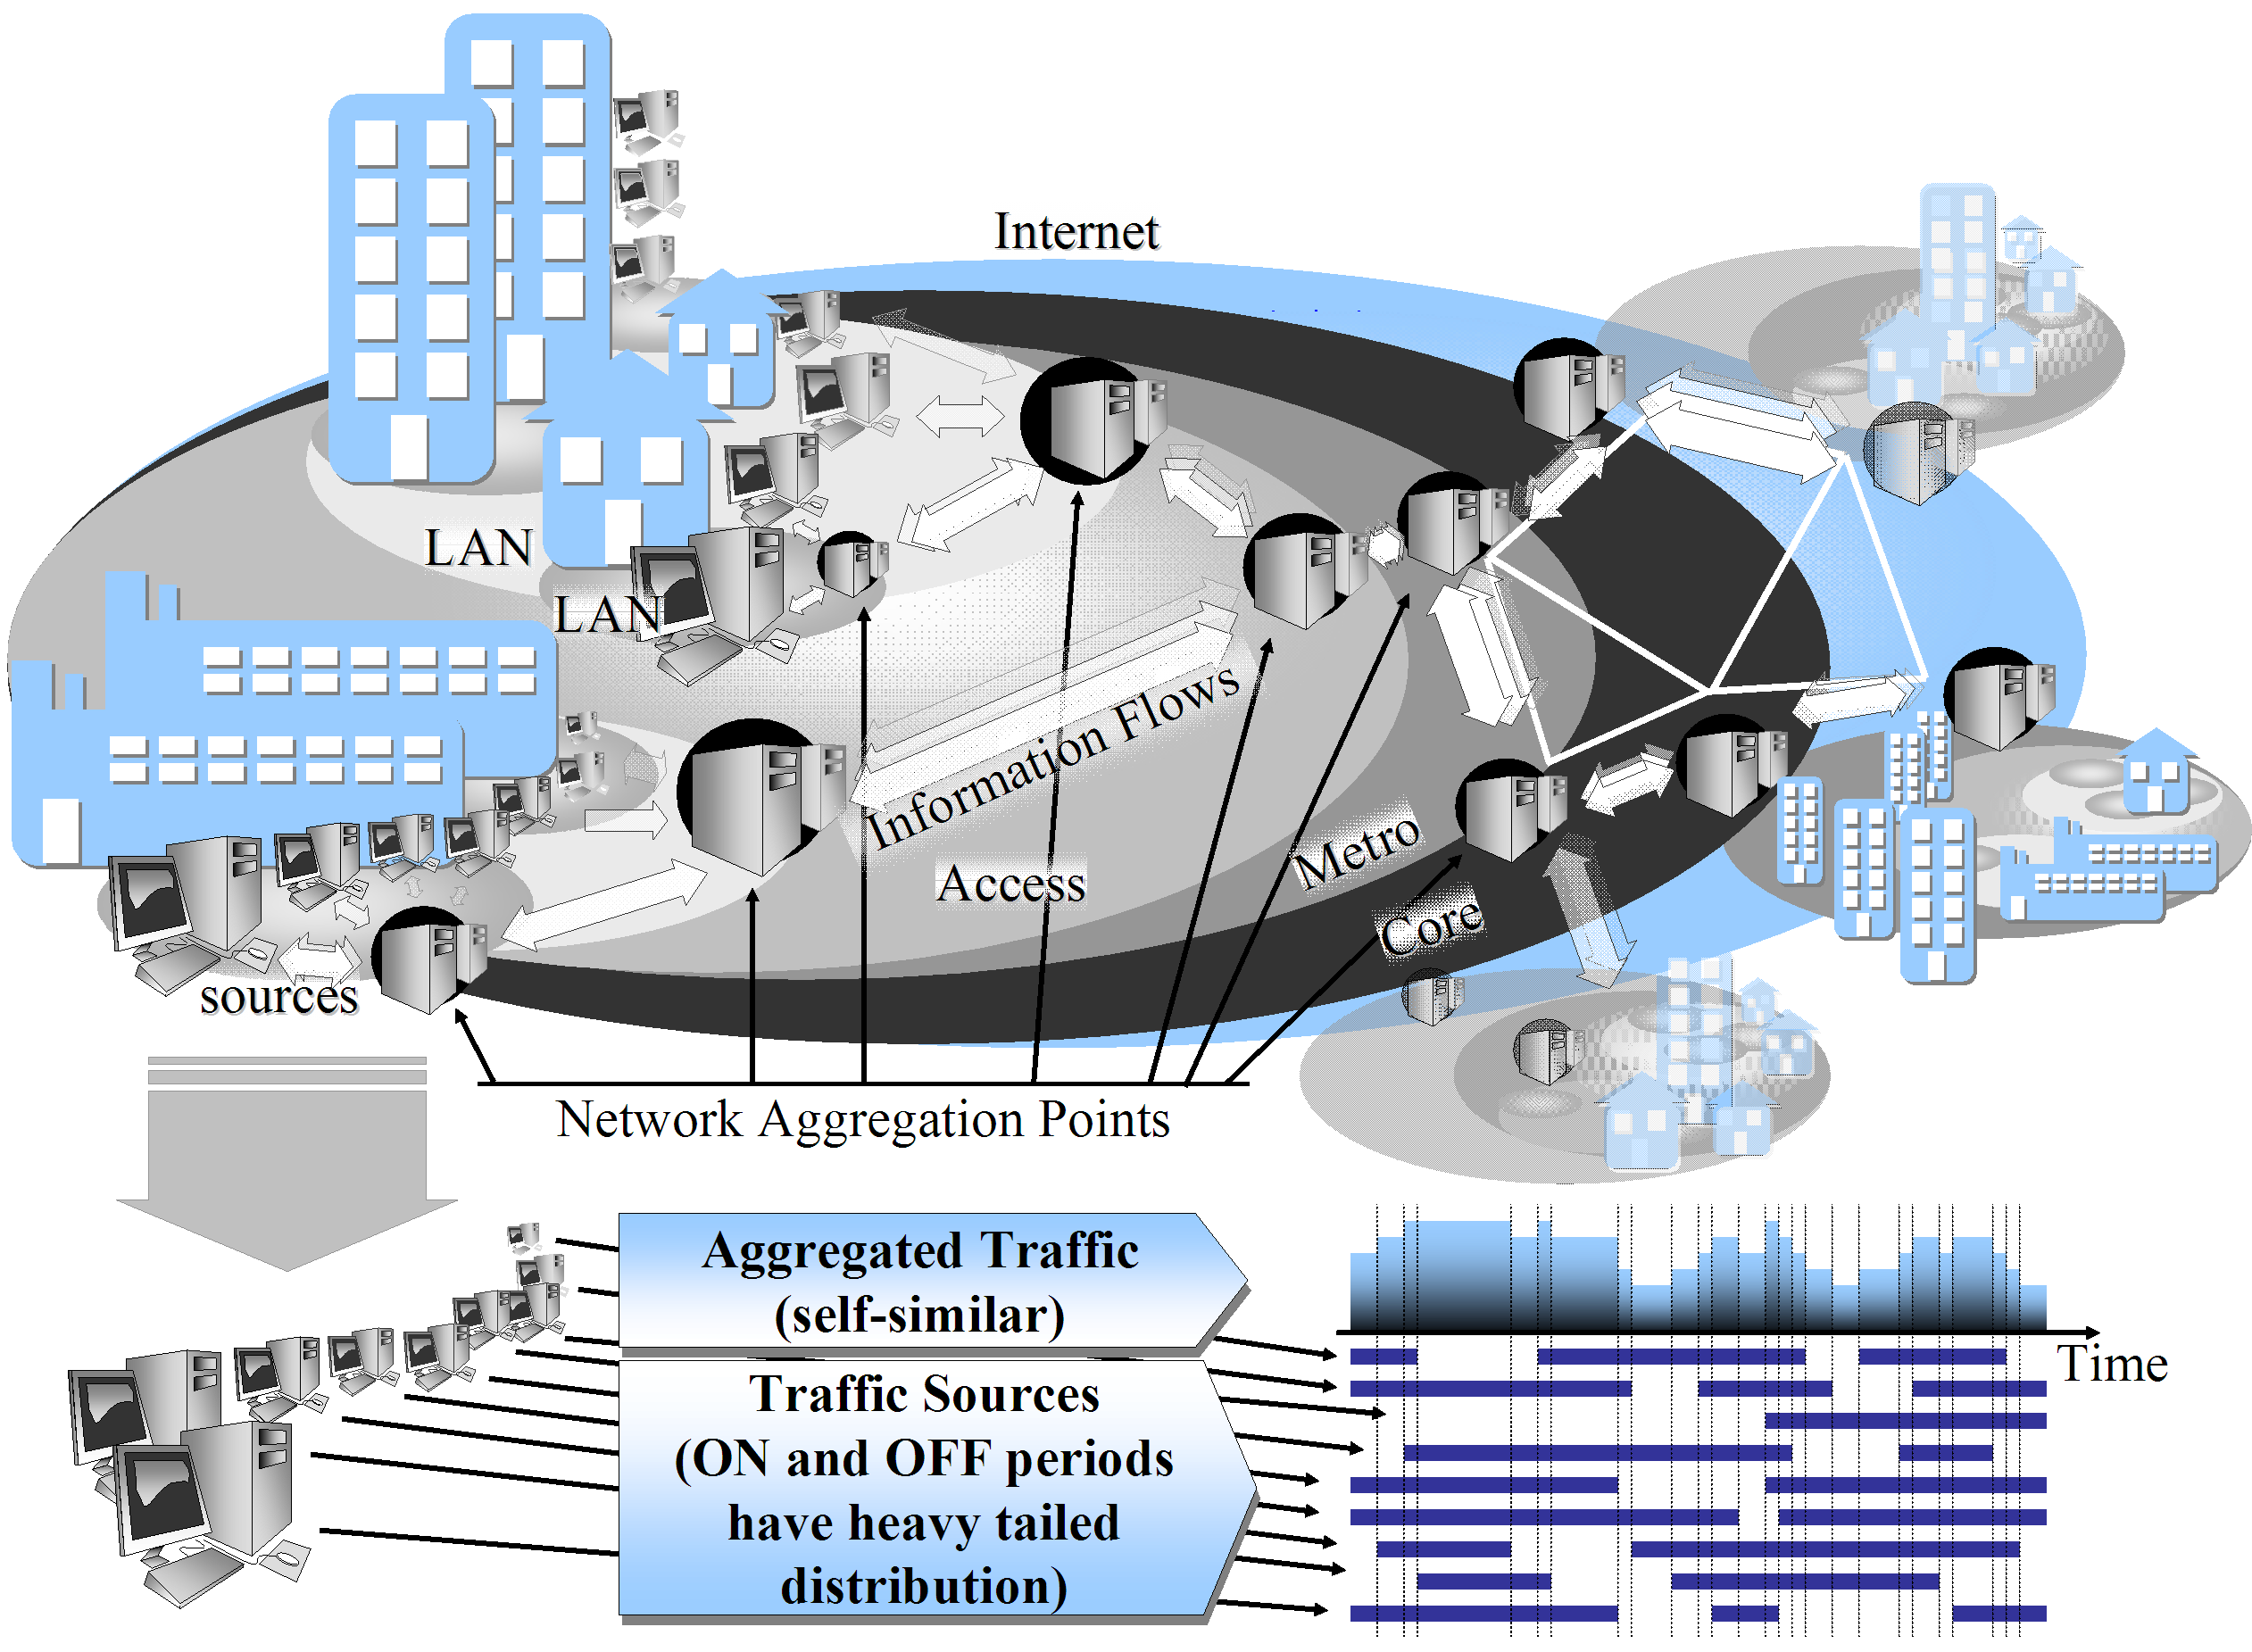 Figure 2.4: Conceptual representation of the Internet and of its constituent computer networks.